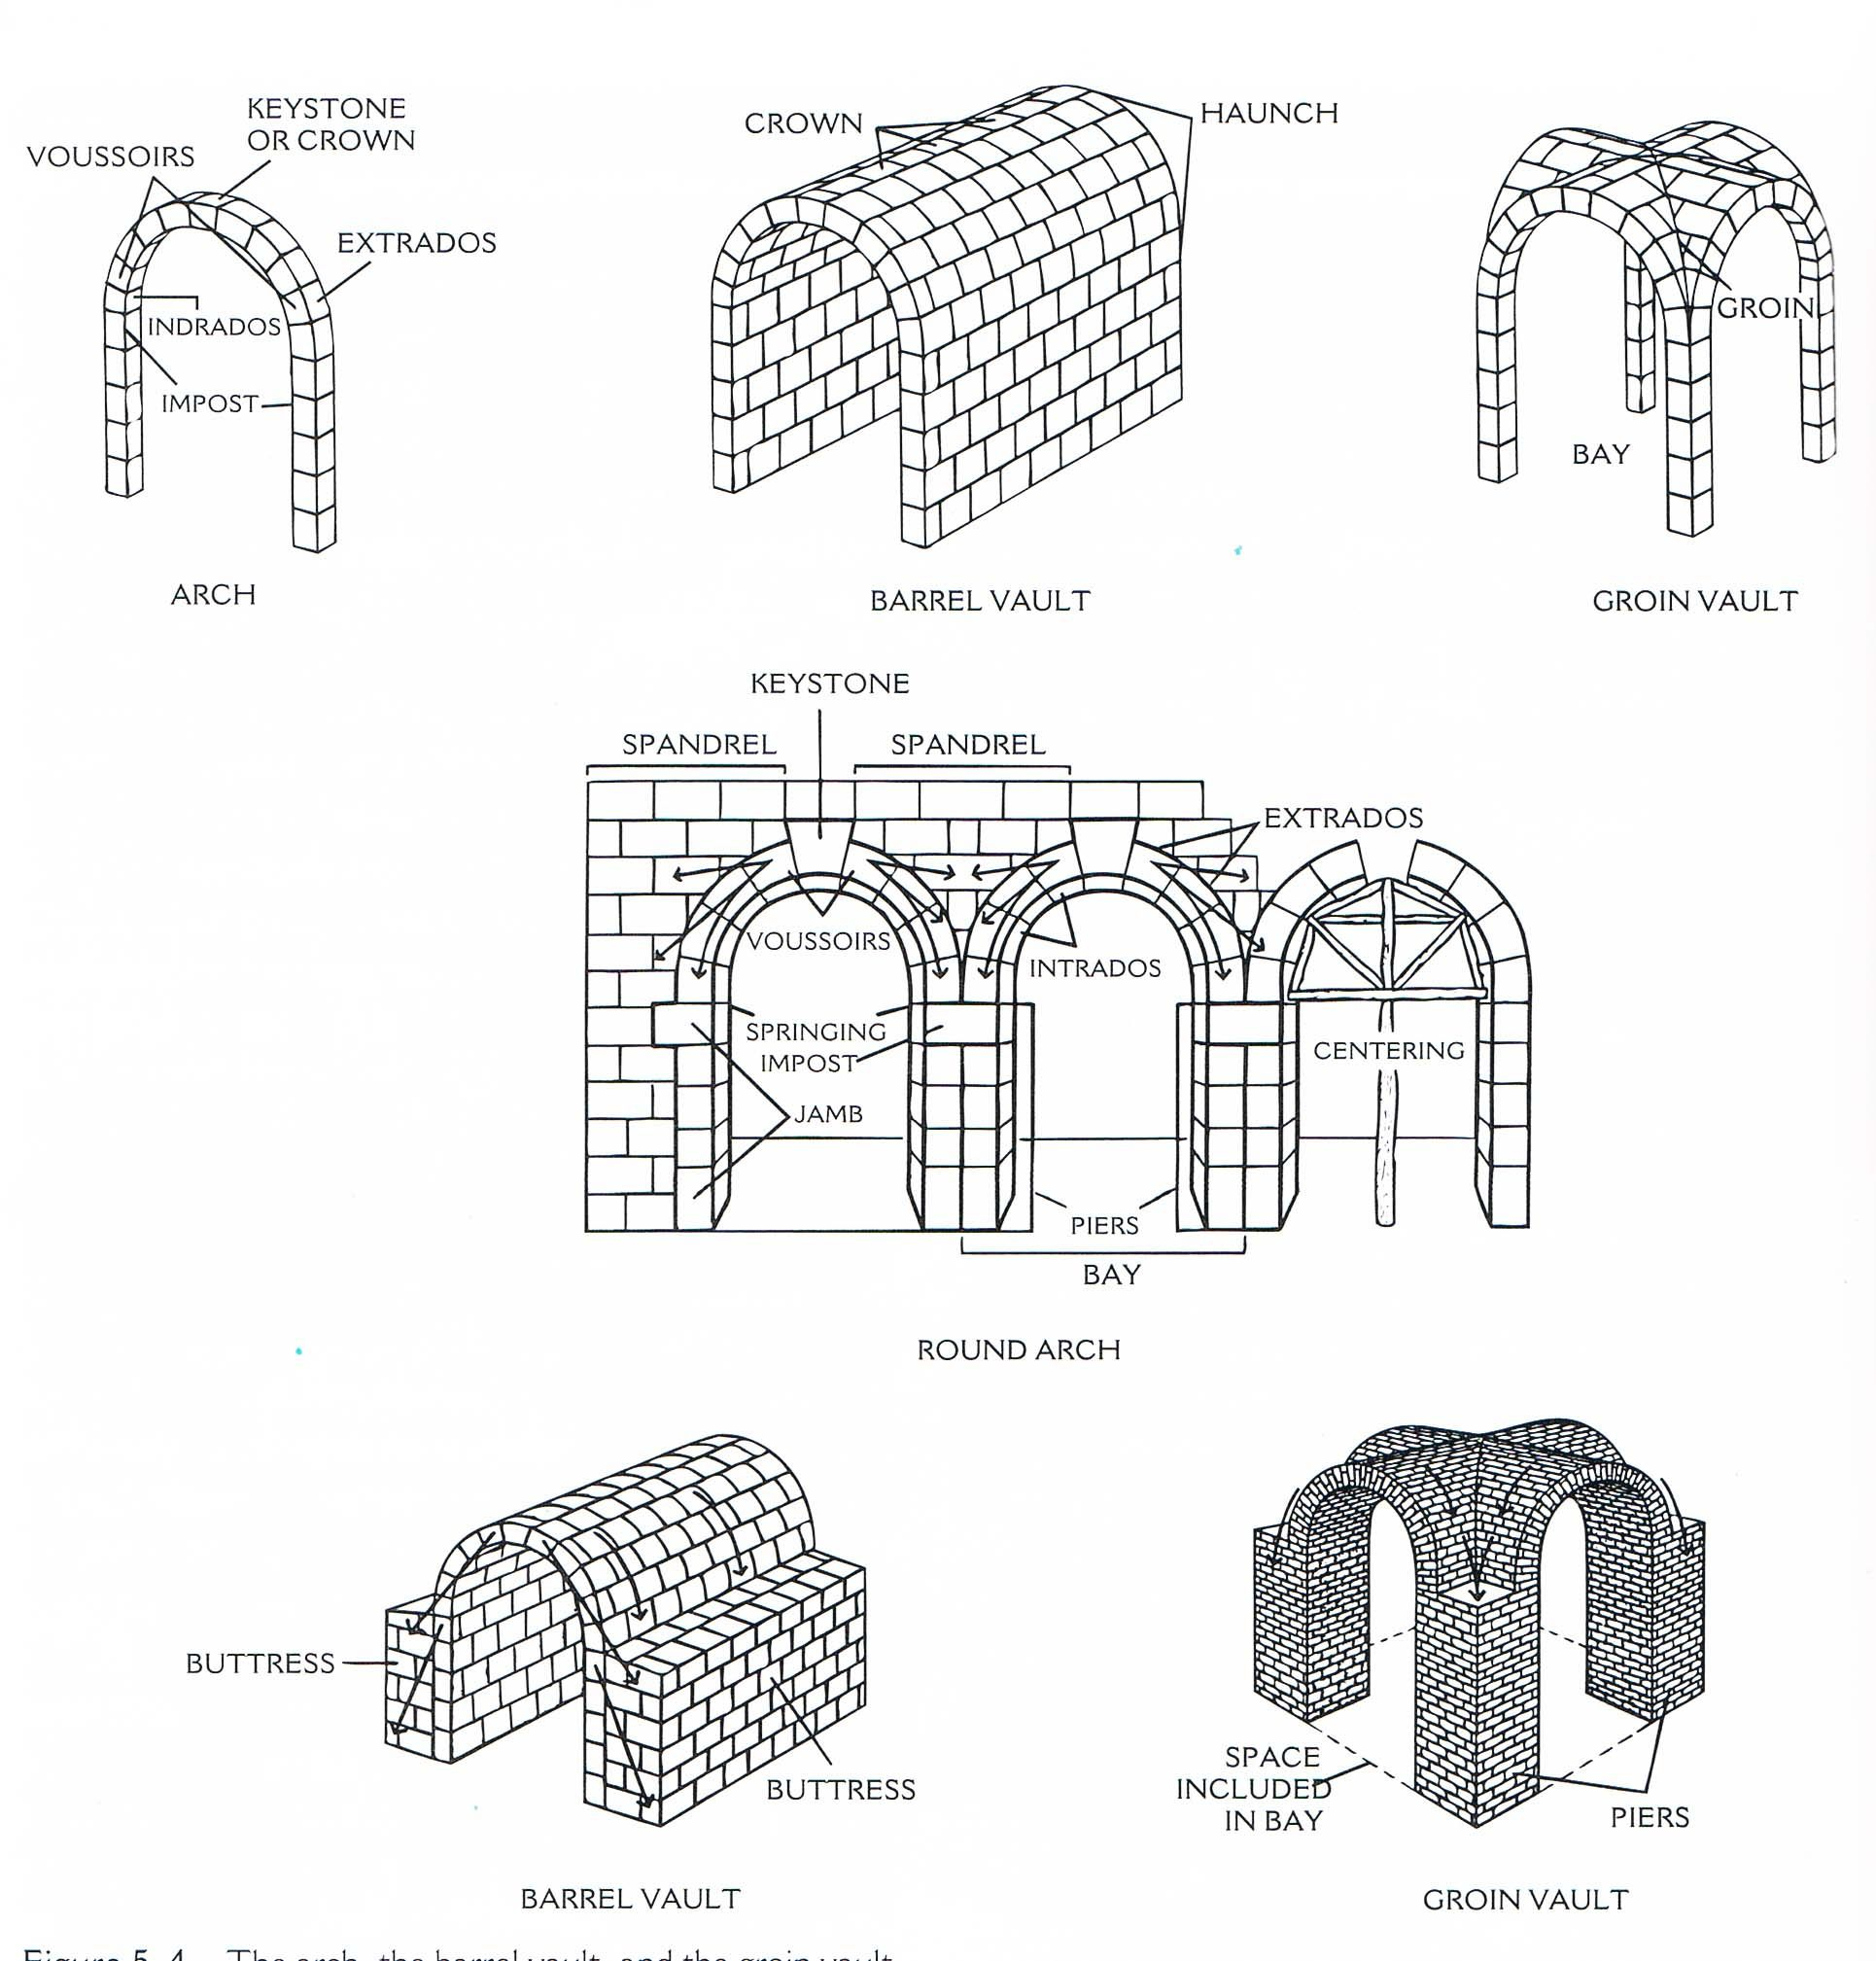 Arches Are Used To Create Barrel Vaults  Groin Vaults And